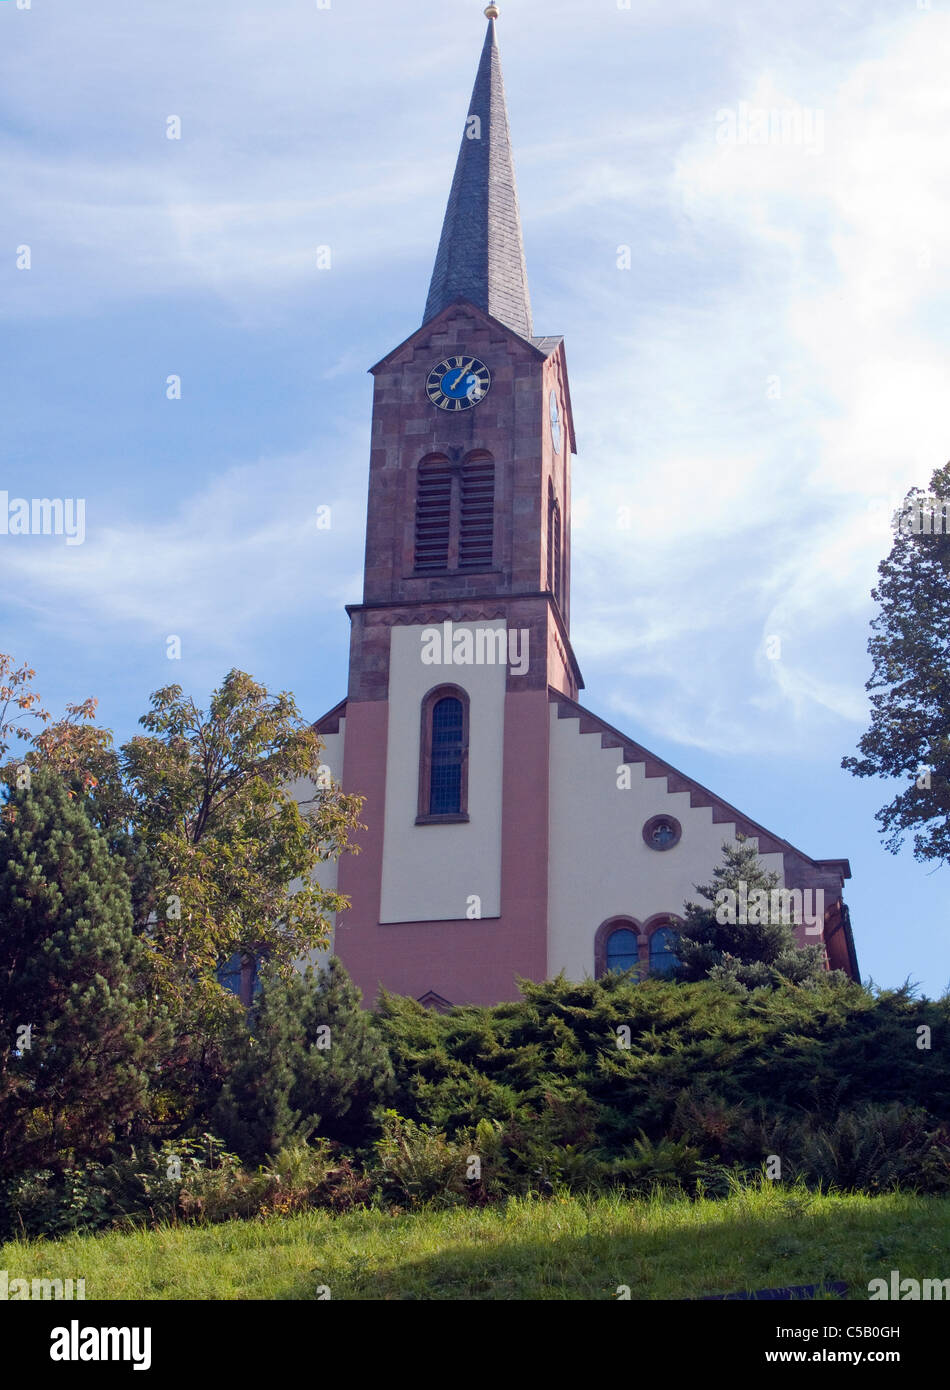 Kirche in Sasbachwalden, Schwarzwald, church in Sasbachwalden, Black Forest - Stock Image